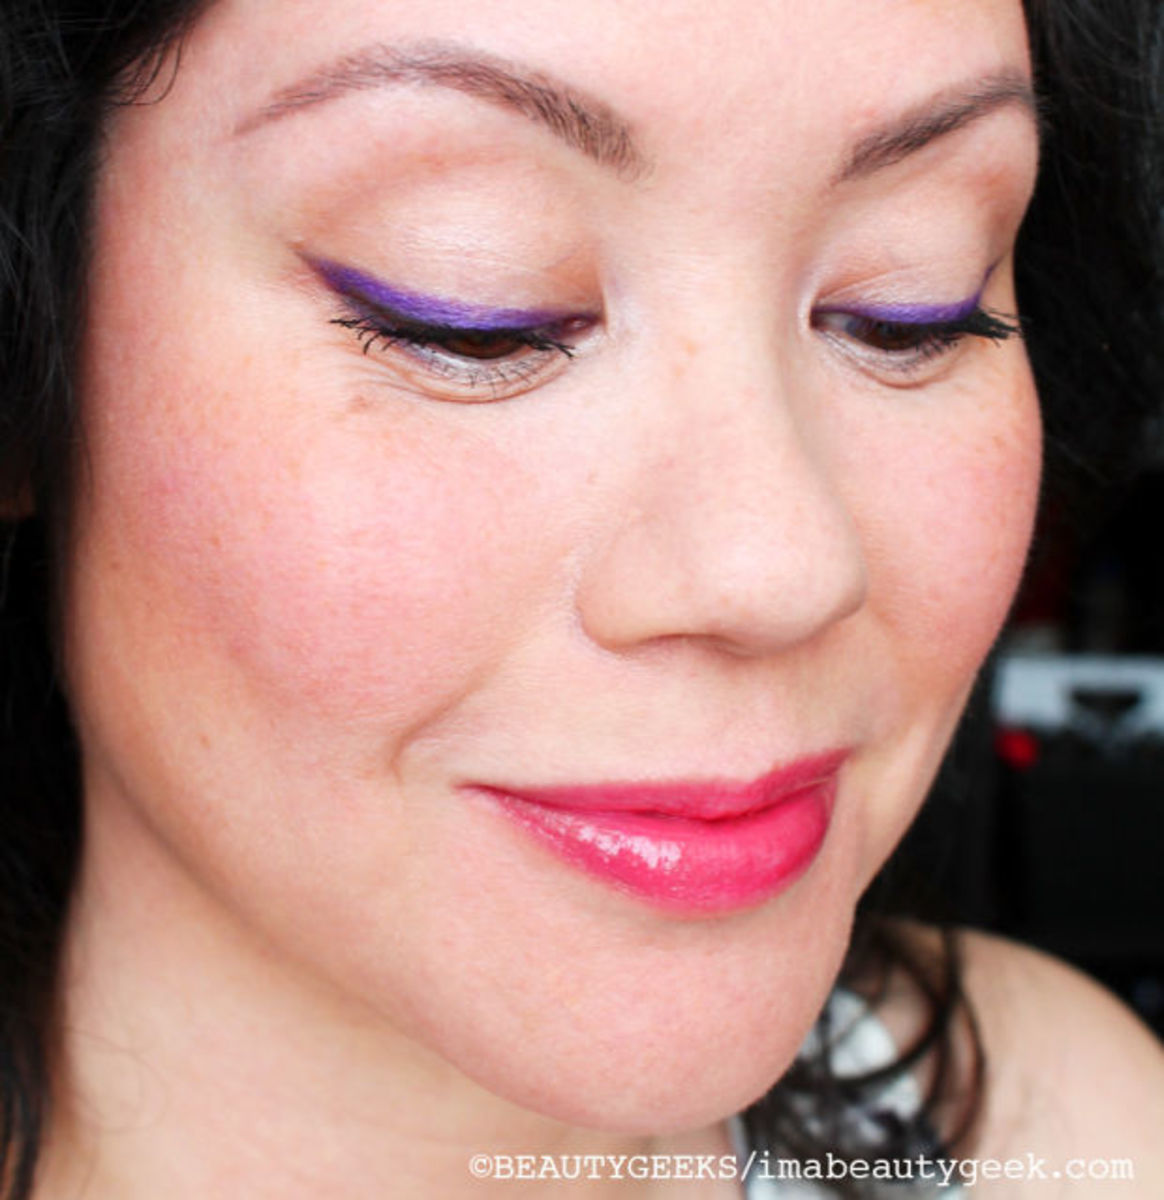 Yep, I'm more than 40, and I'm wearing manga-inspired makeup. Love this Pure Purple liner and Miss Manga Mascara too!